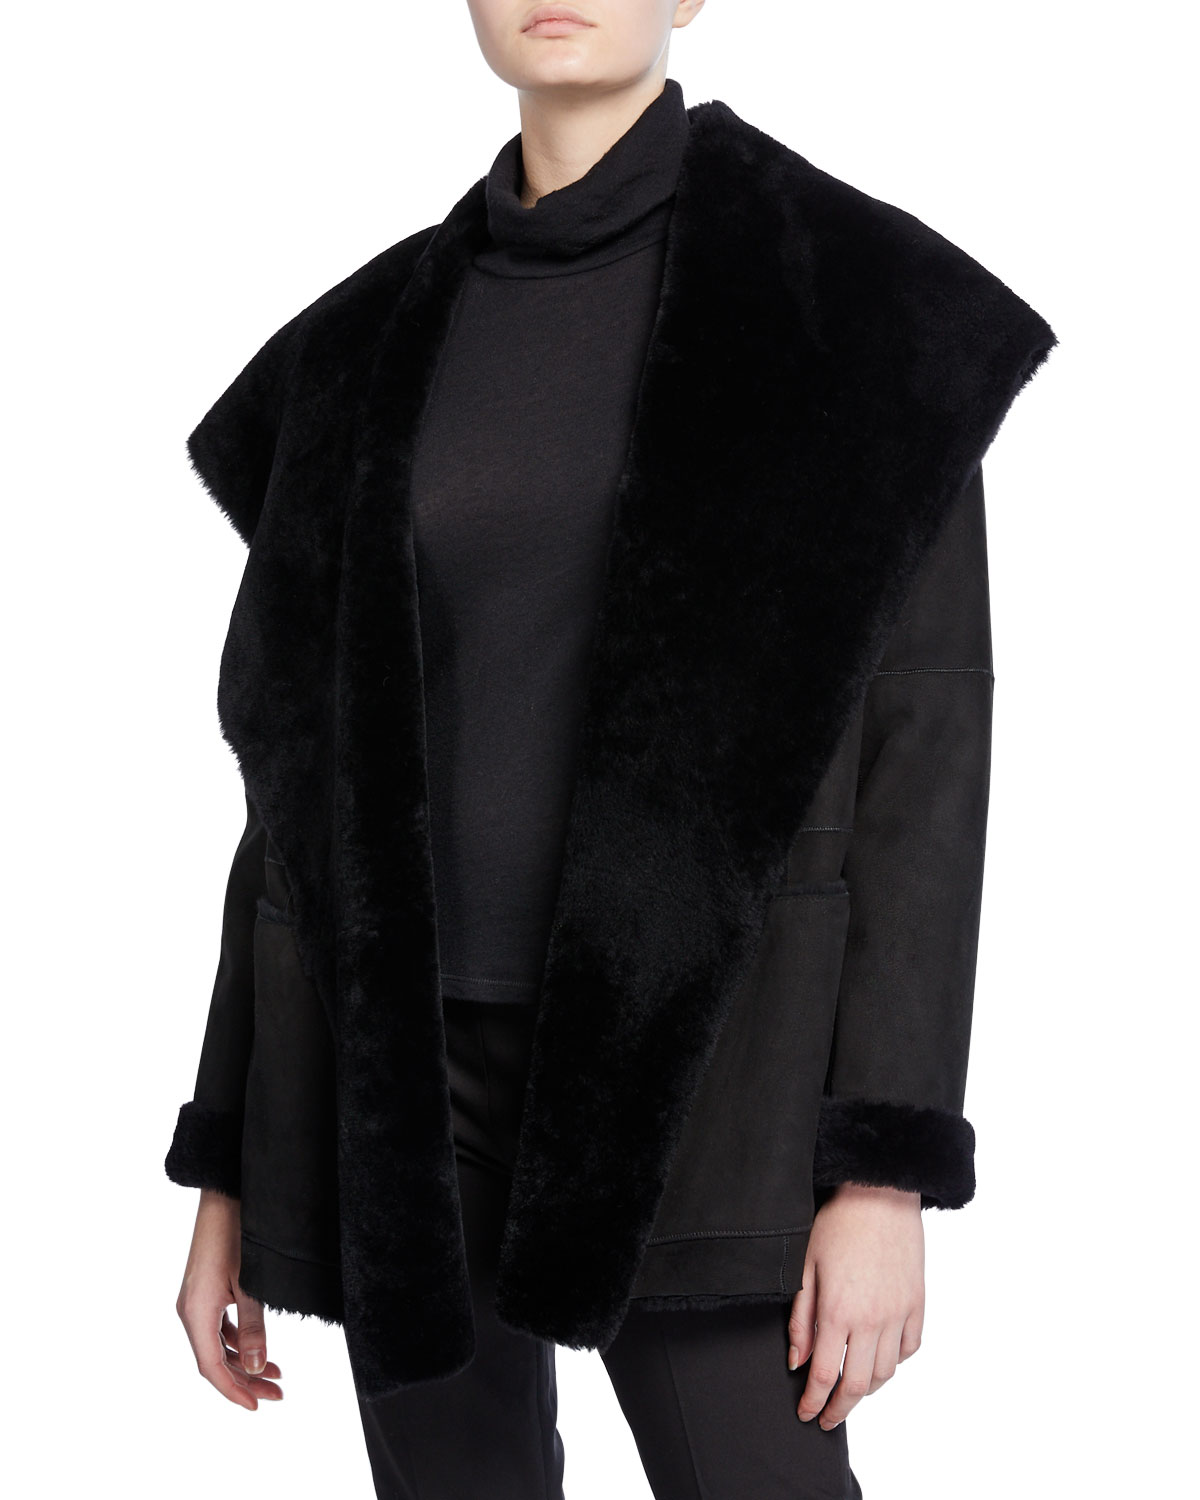 Shearling Cardigan Coat by Vince